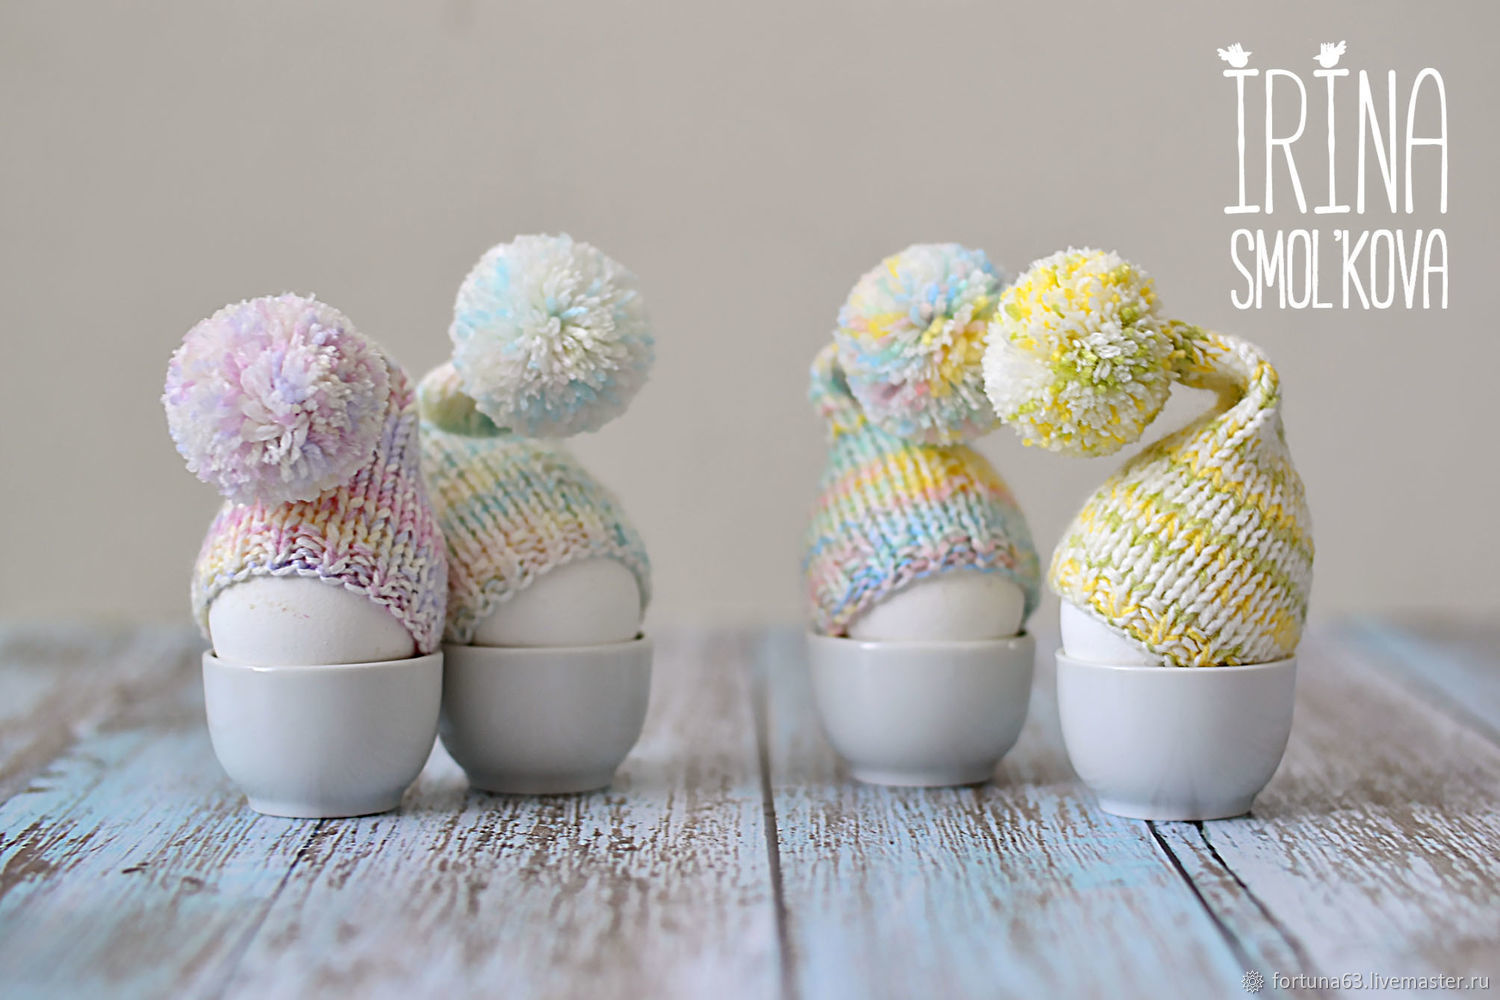 Cap cap for easter eggs shop online on livemaster with shipping easter gifts handmade cap cap for easter eggs design by irina smol negle Gallery